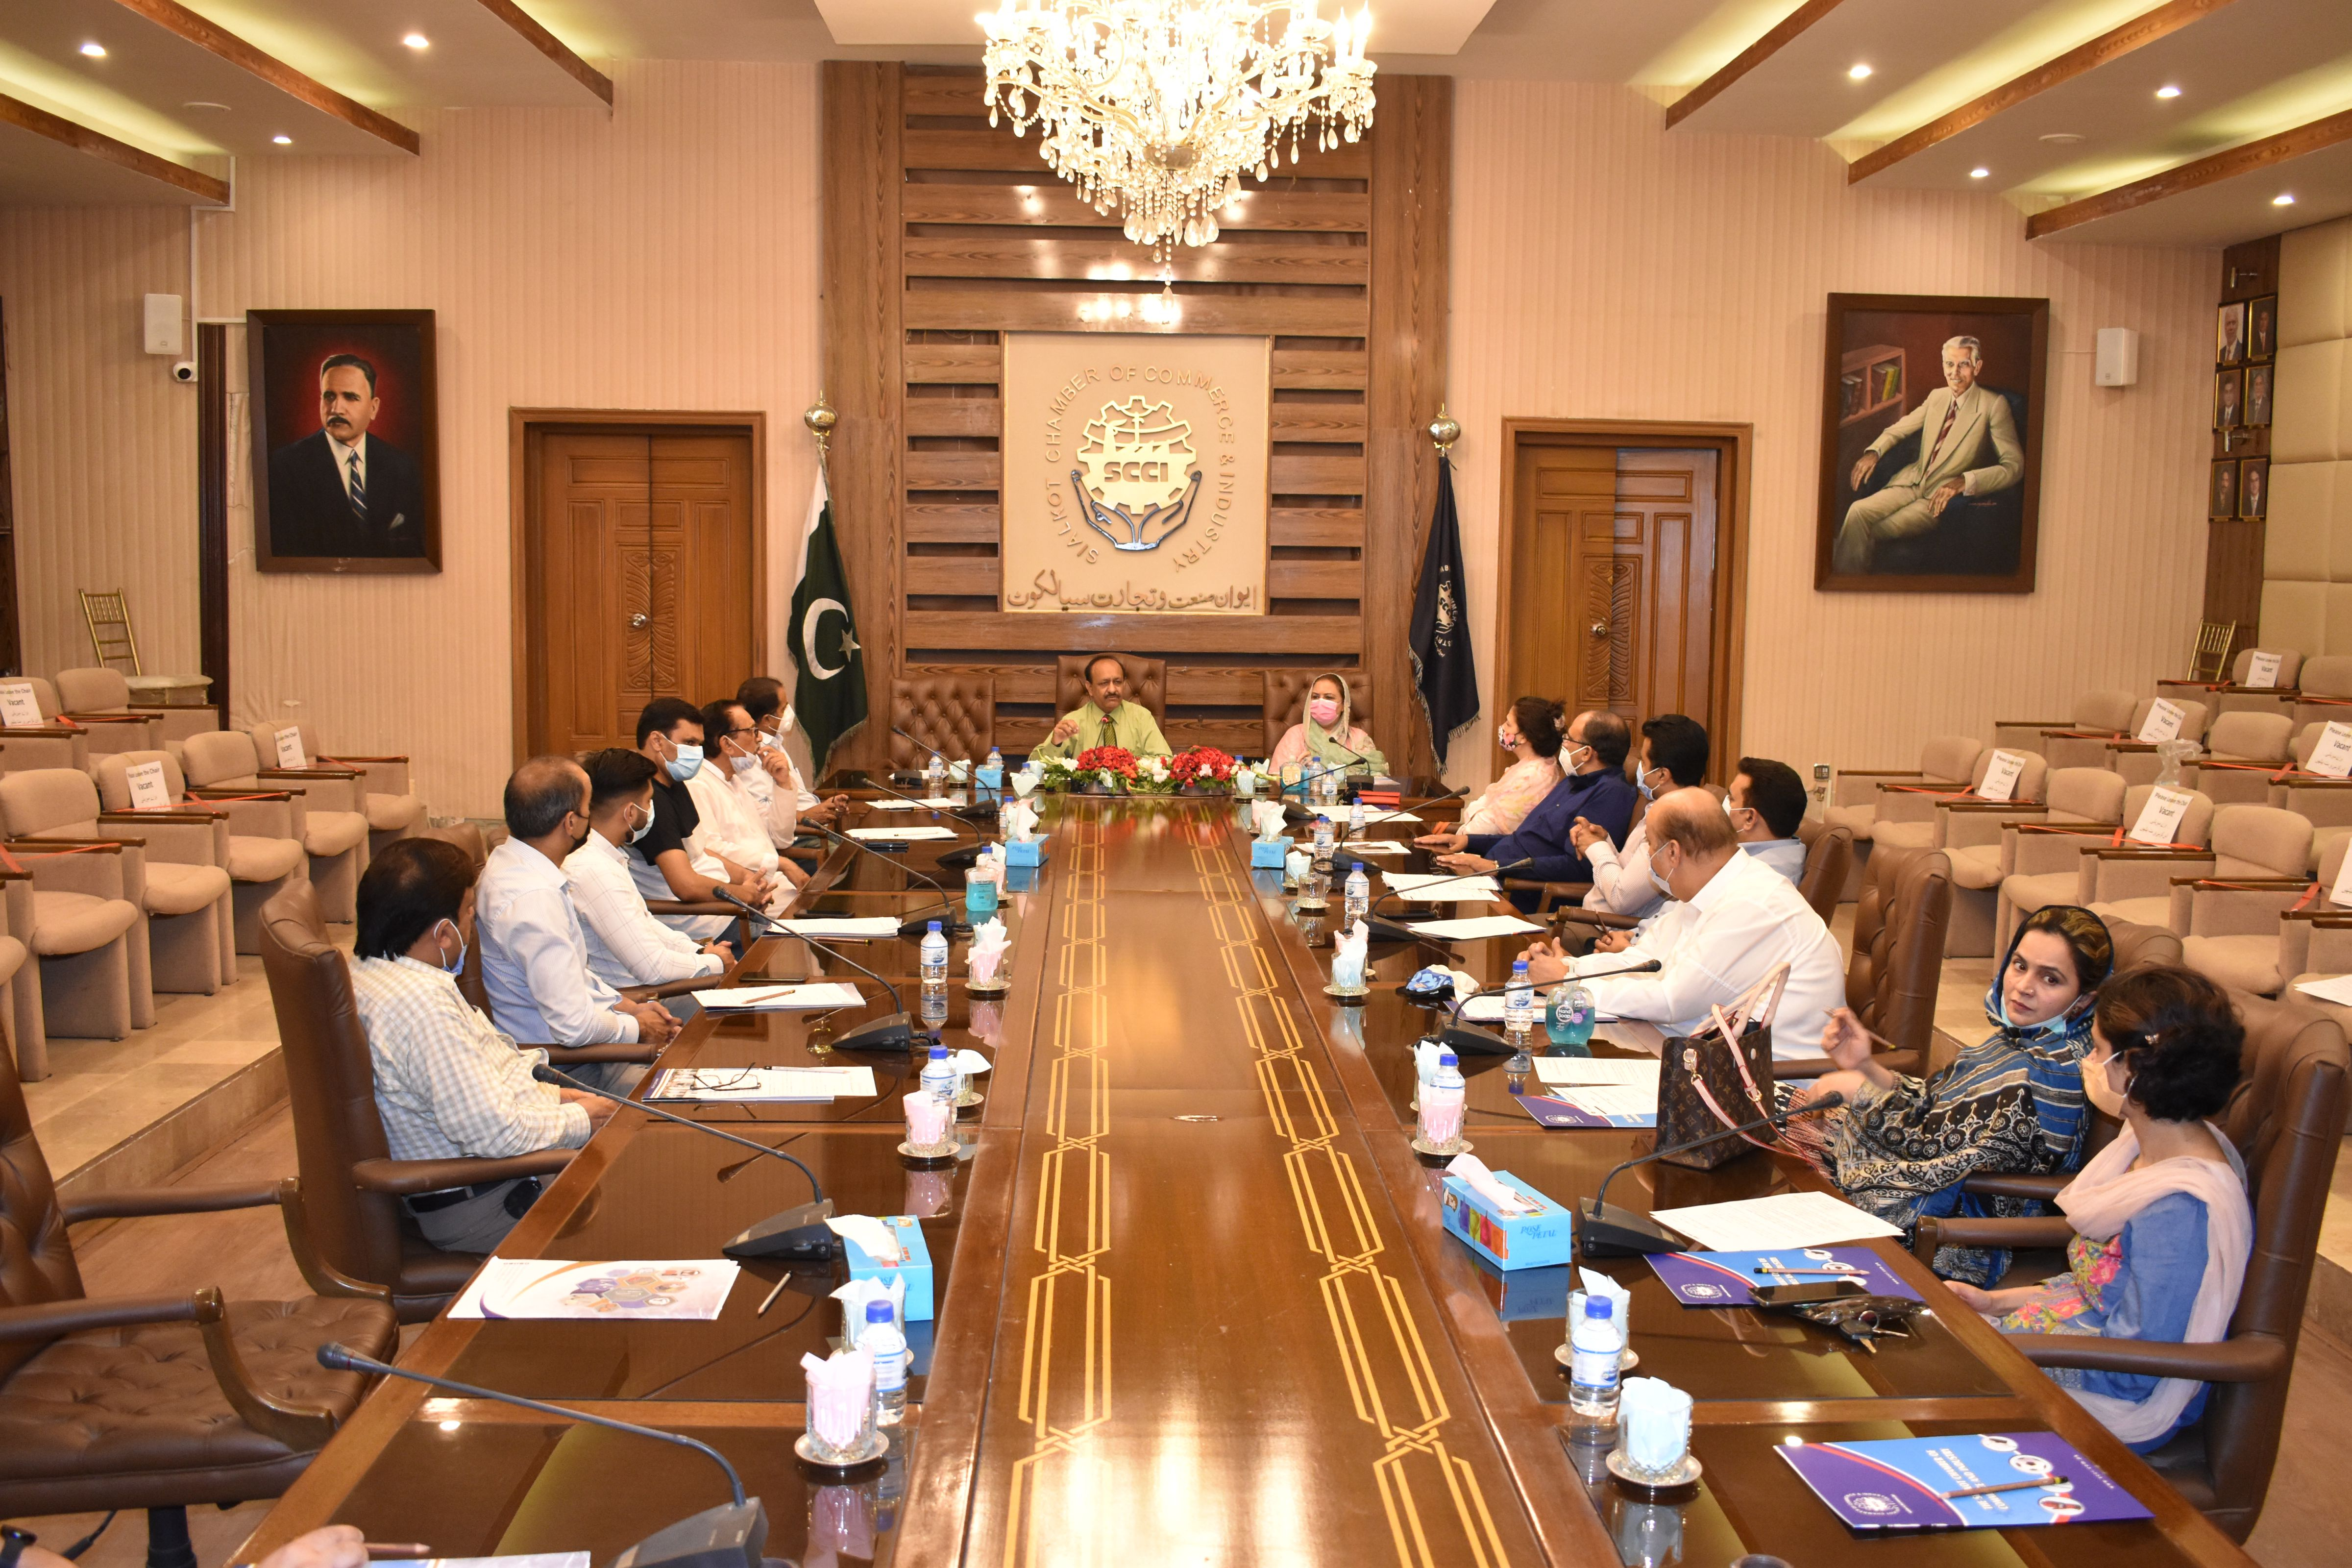 On June 05, 2021, Meeting of Departmental Committee on Garrison and Cantonment Board Affairs was held at SCCI.